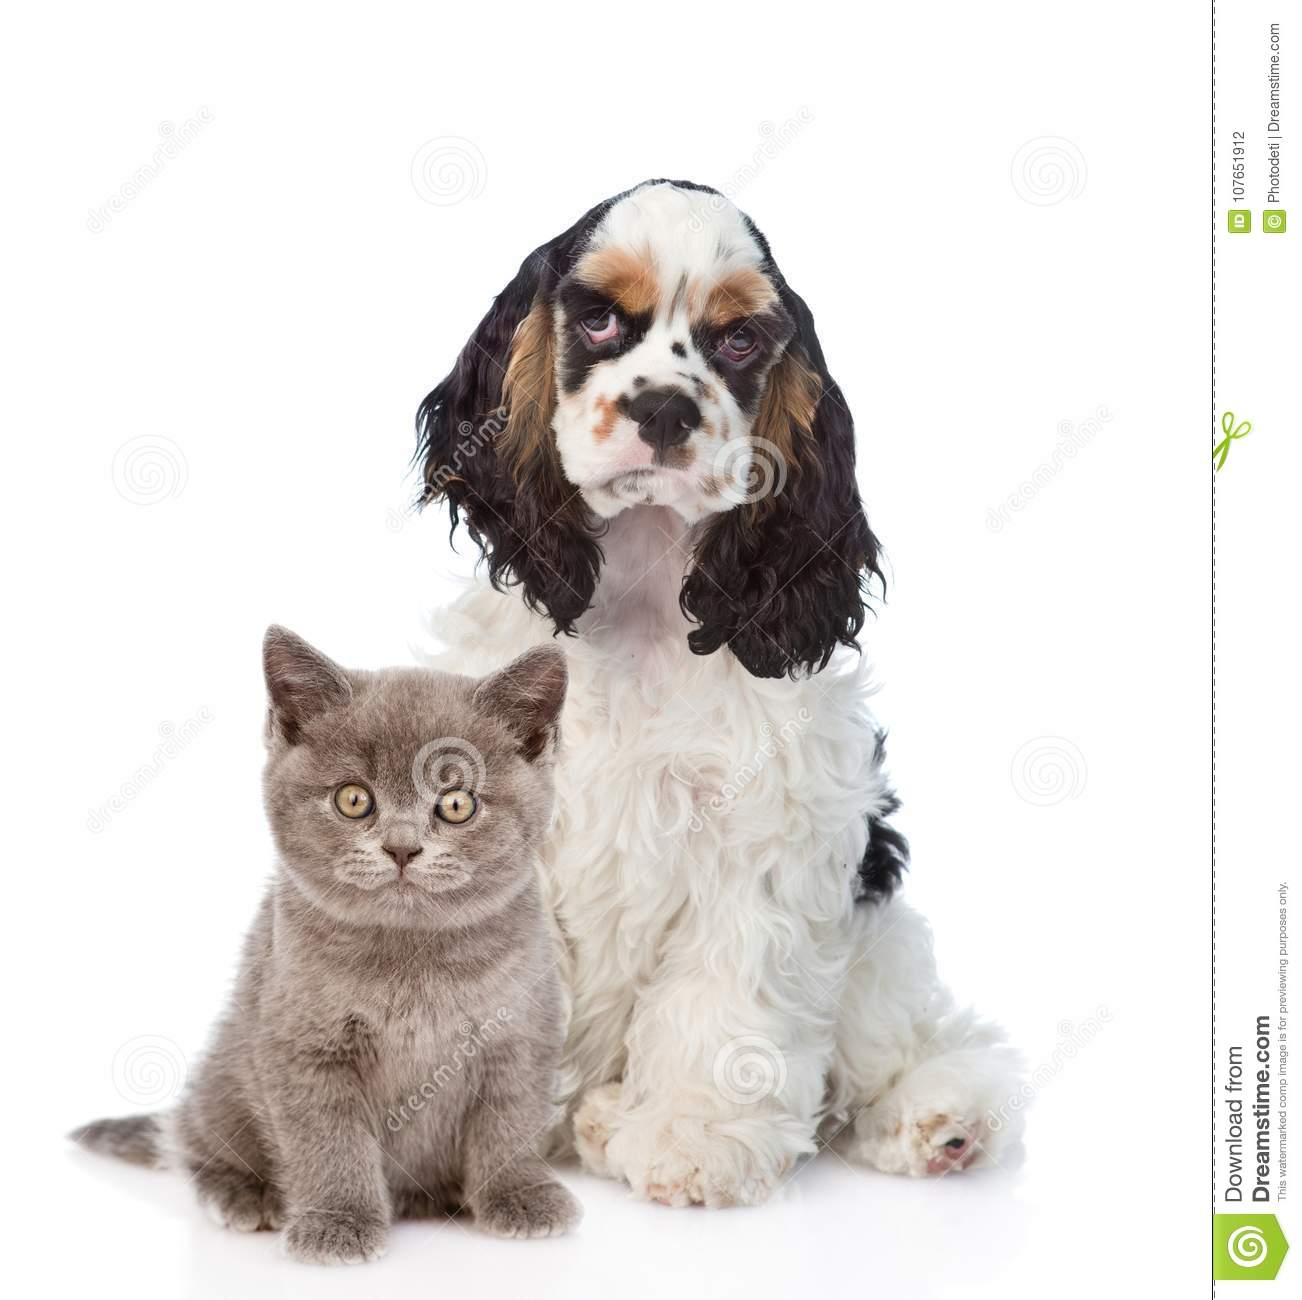 Cocker Spaniel Puppy With Baby Kitten Focus On Cat Isolated Stock Photo Image Of Animal Care 107651912